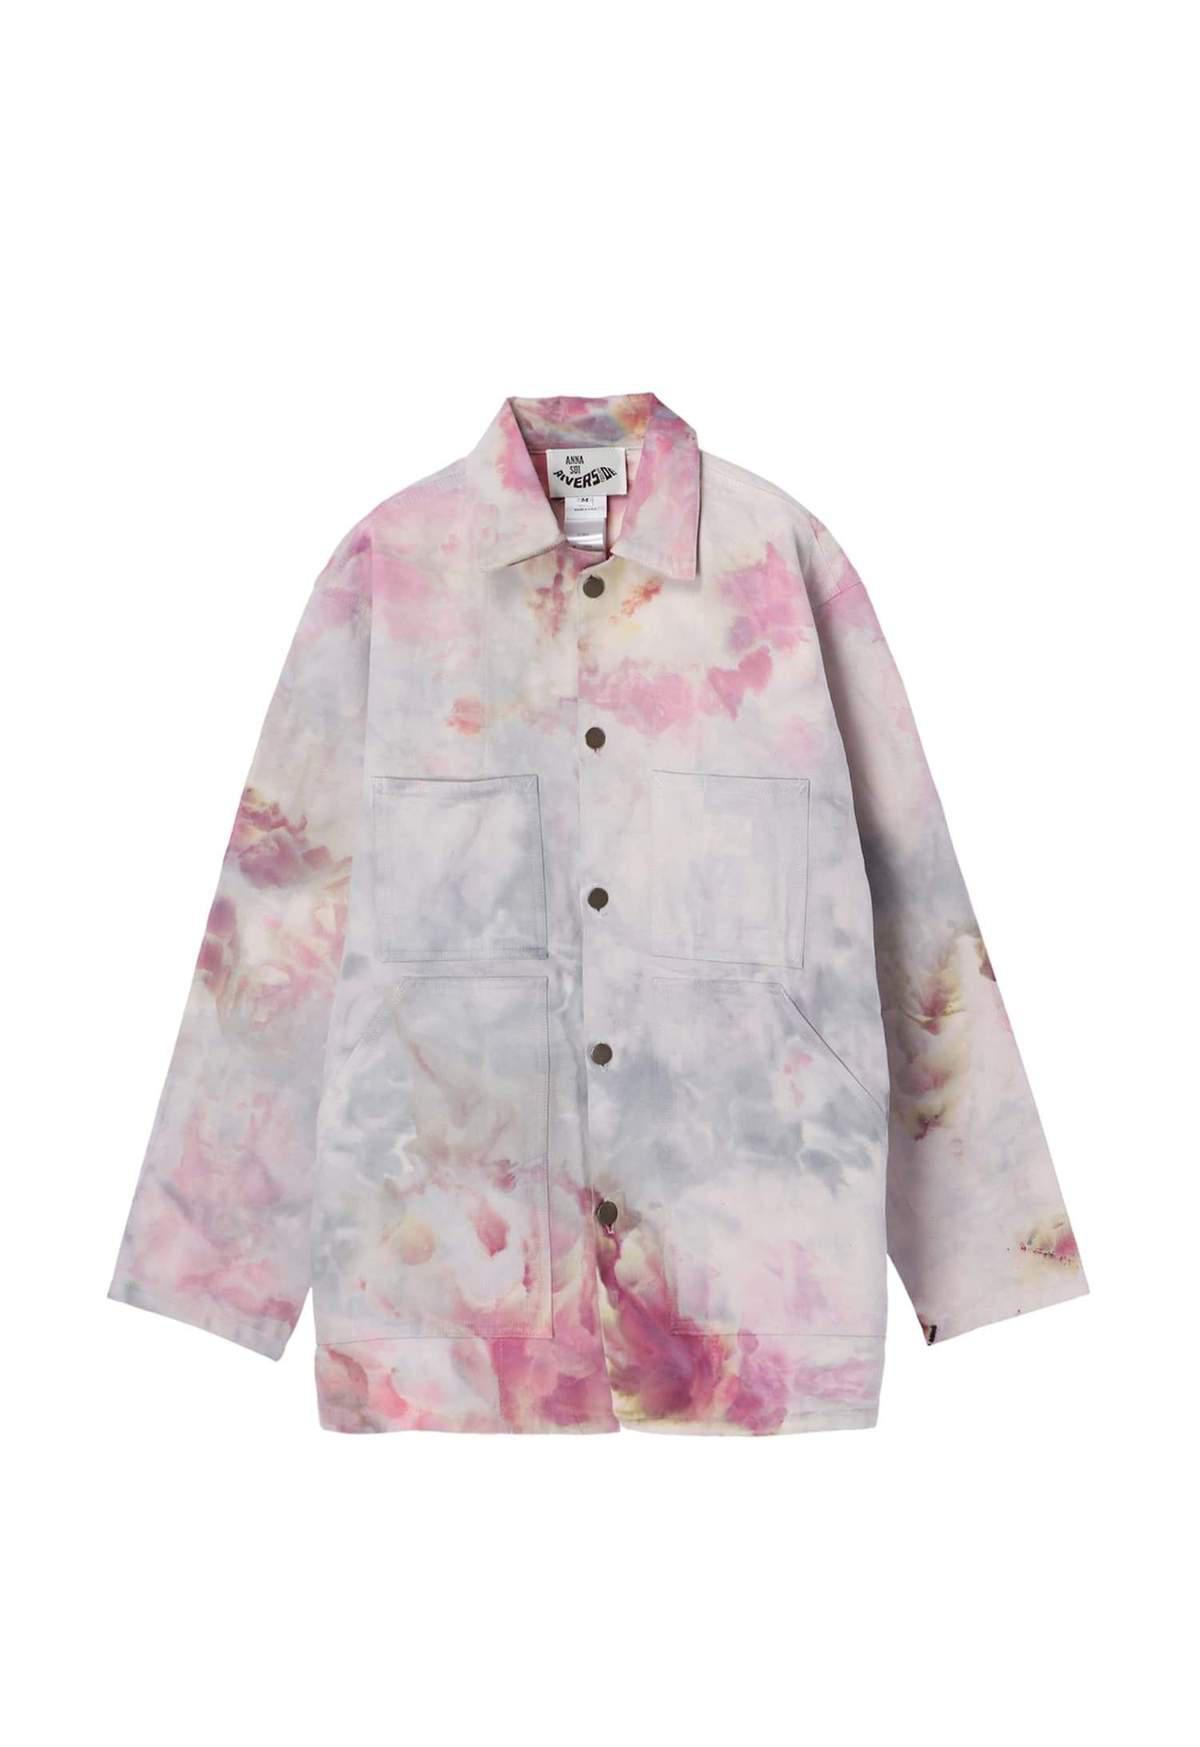 Hand Tie Dyed Vintage Dead Stock Jacket 8